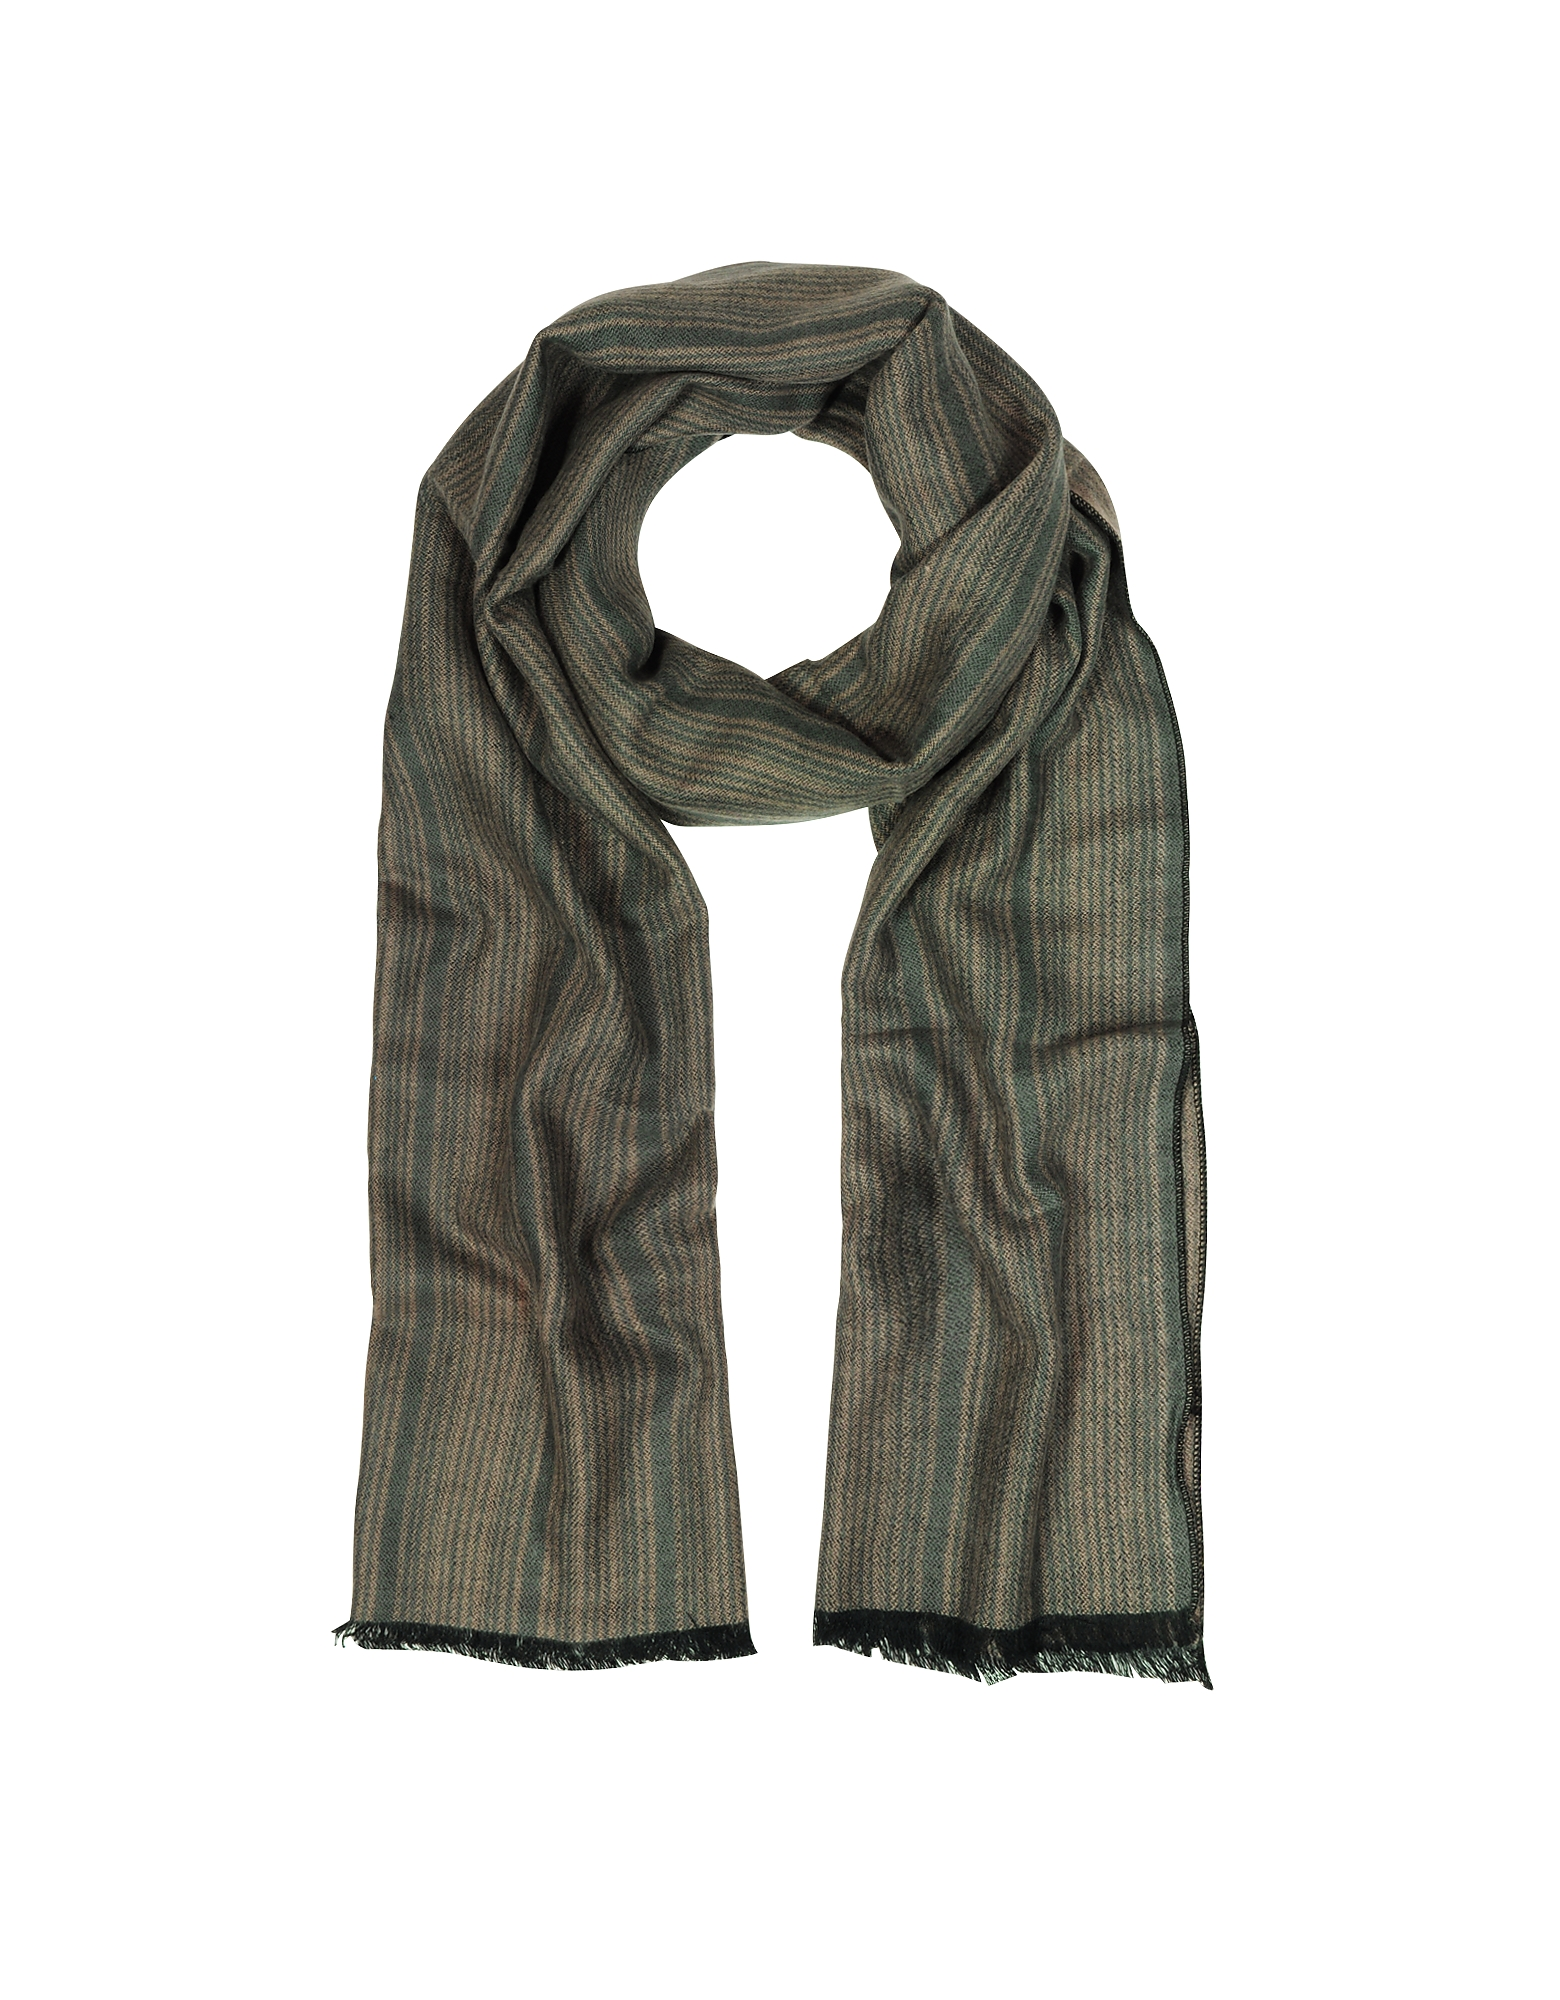 Mila Schon Long Scarves, Khaki Stripe Wooden Fiber Fringed Long Scarf